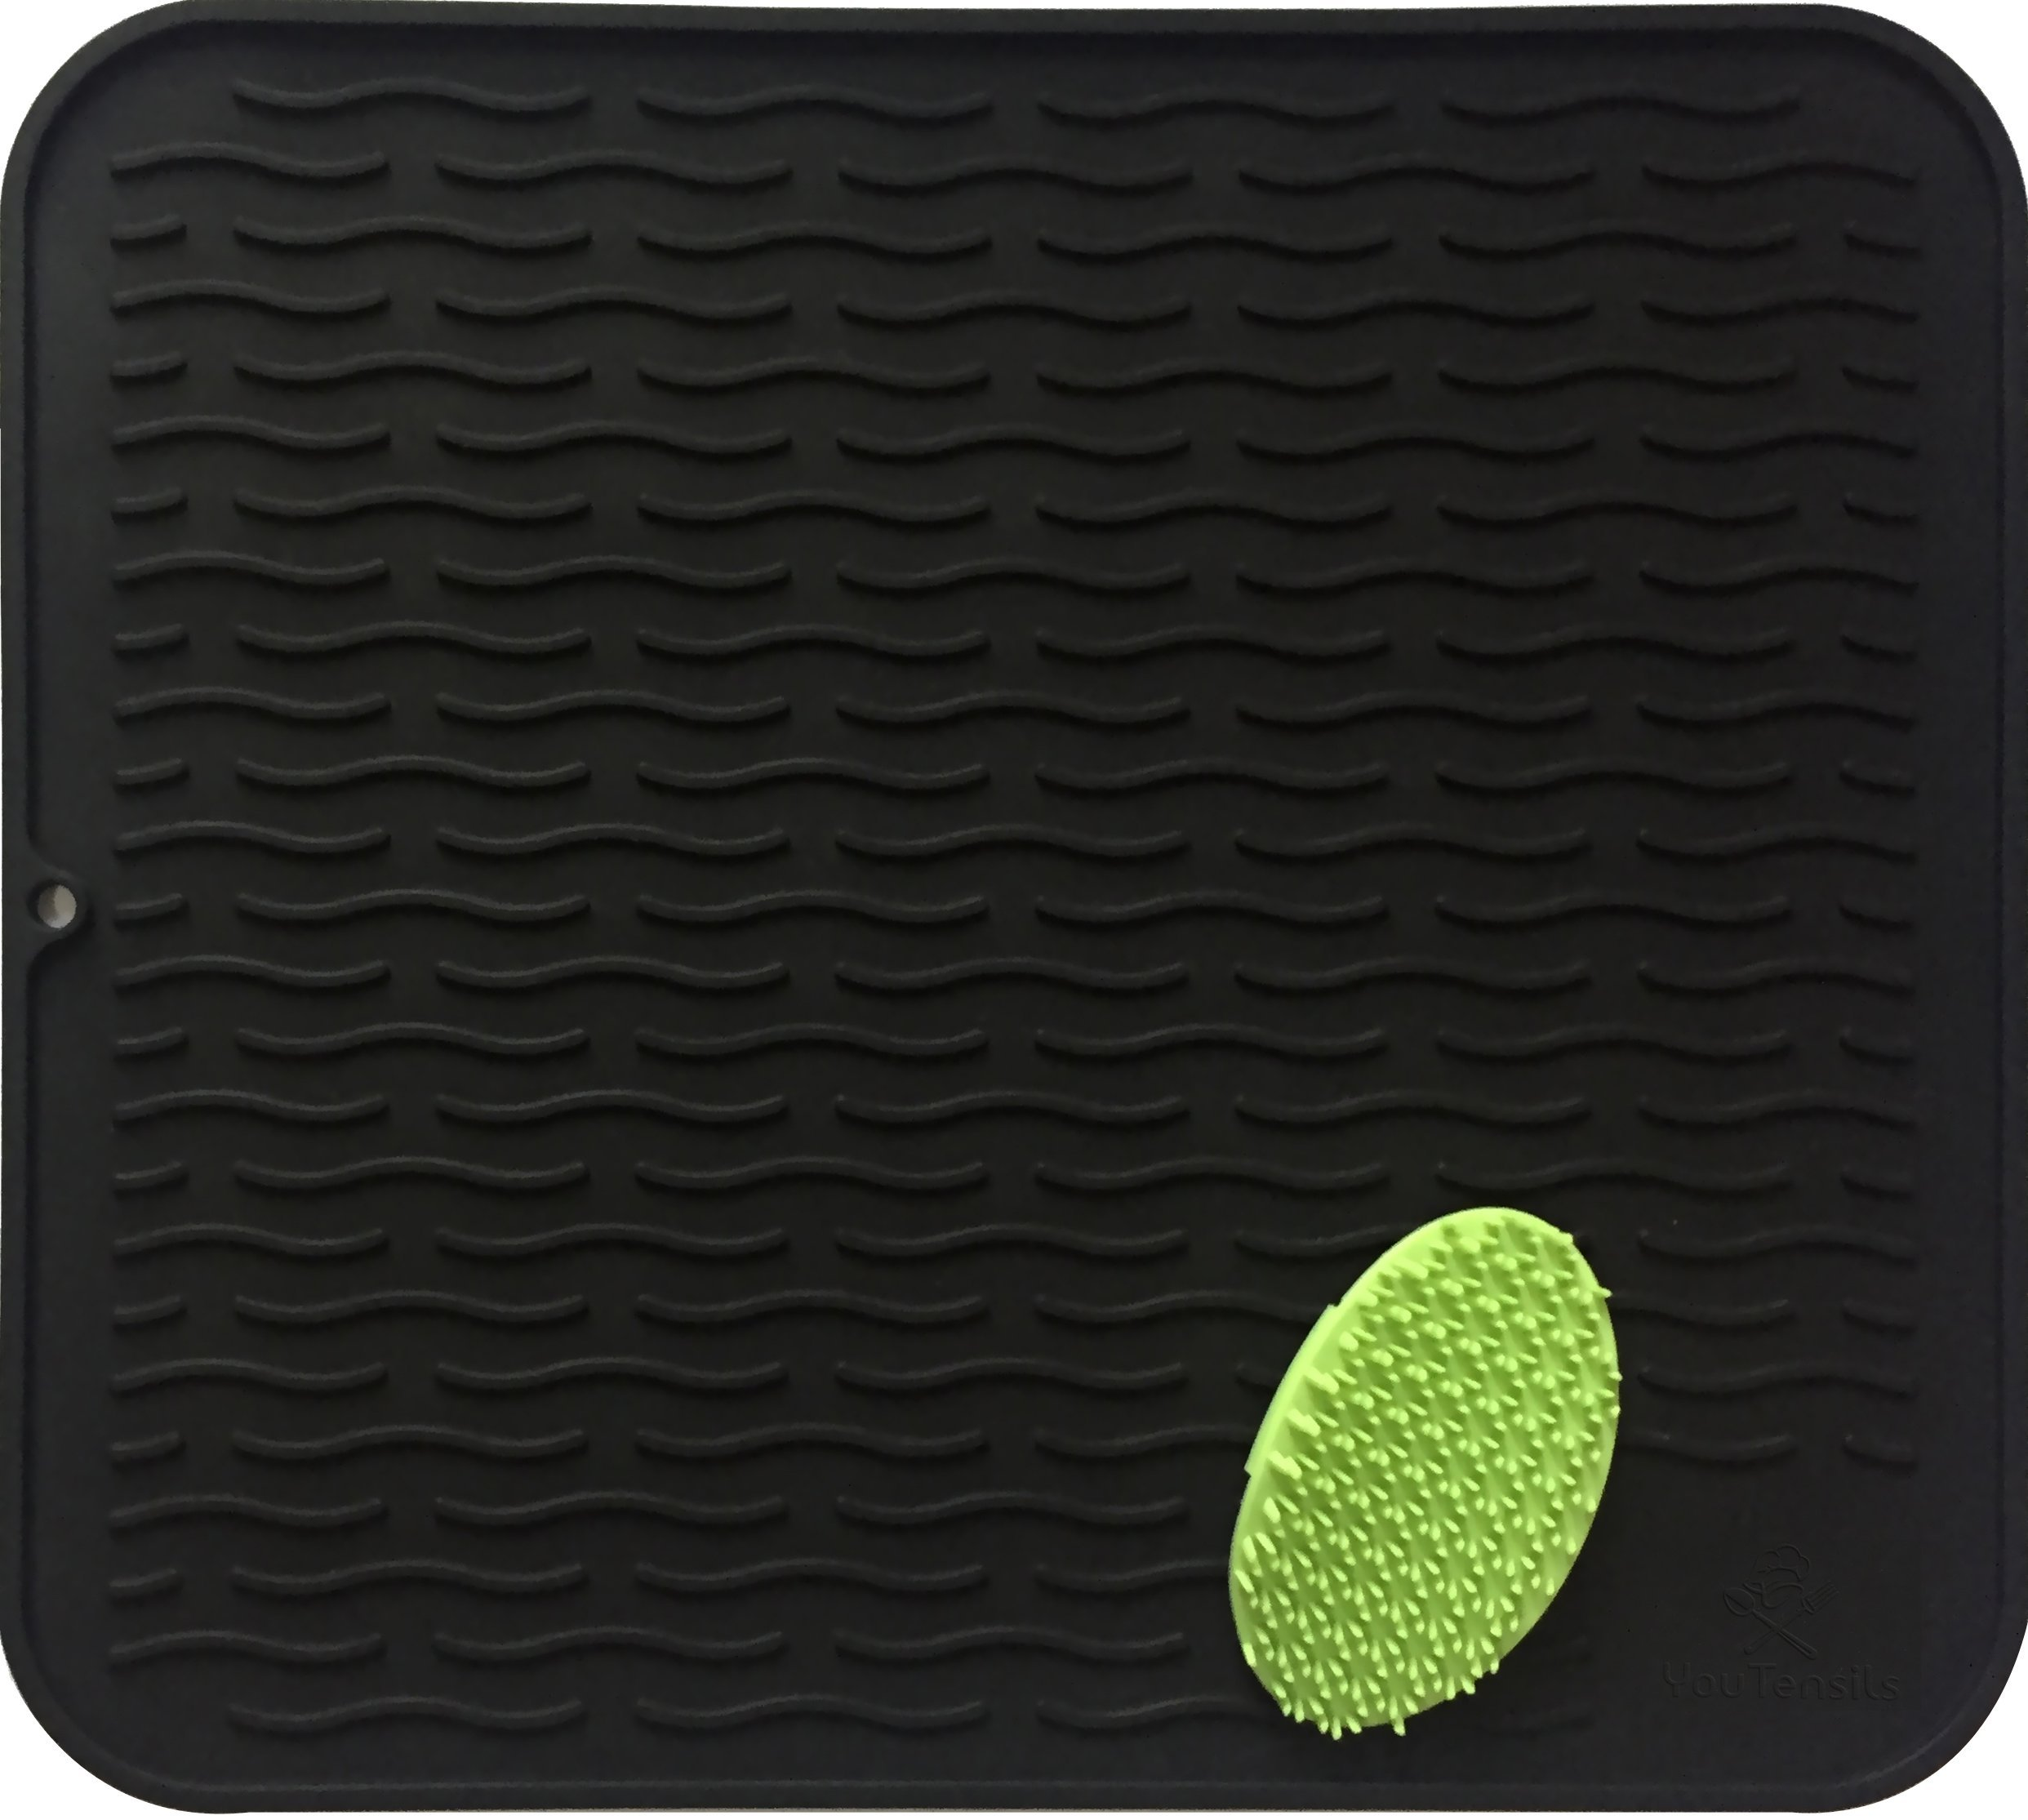 Silicone Dish Drying Mat & Small Scrubber | Kitchen Dish Drainer Mat & Large Trivet | Food Safe Fast Draining Pad for Counter-top | 17.8'' x 15.8'' (XL, Black)